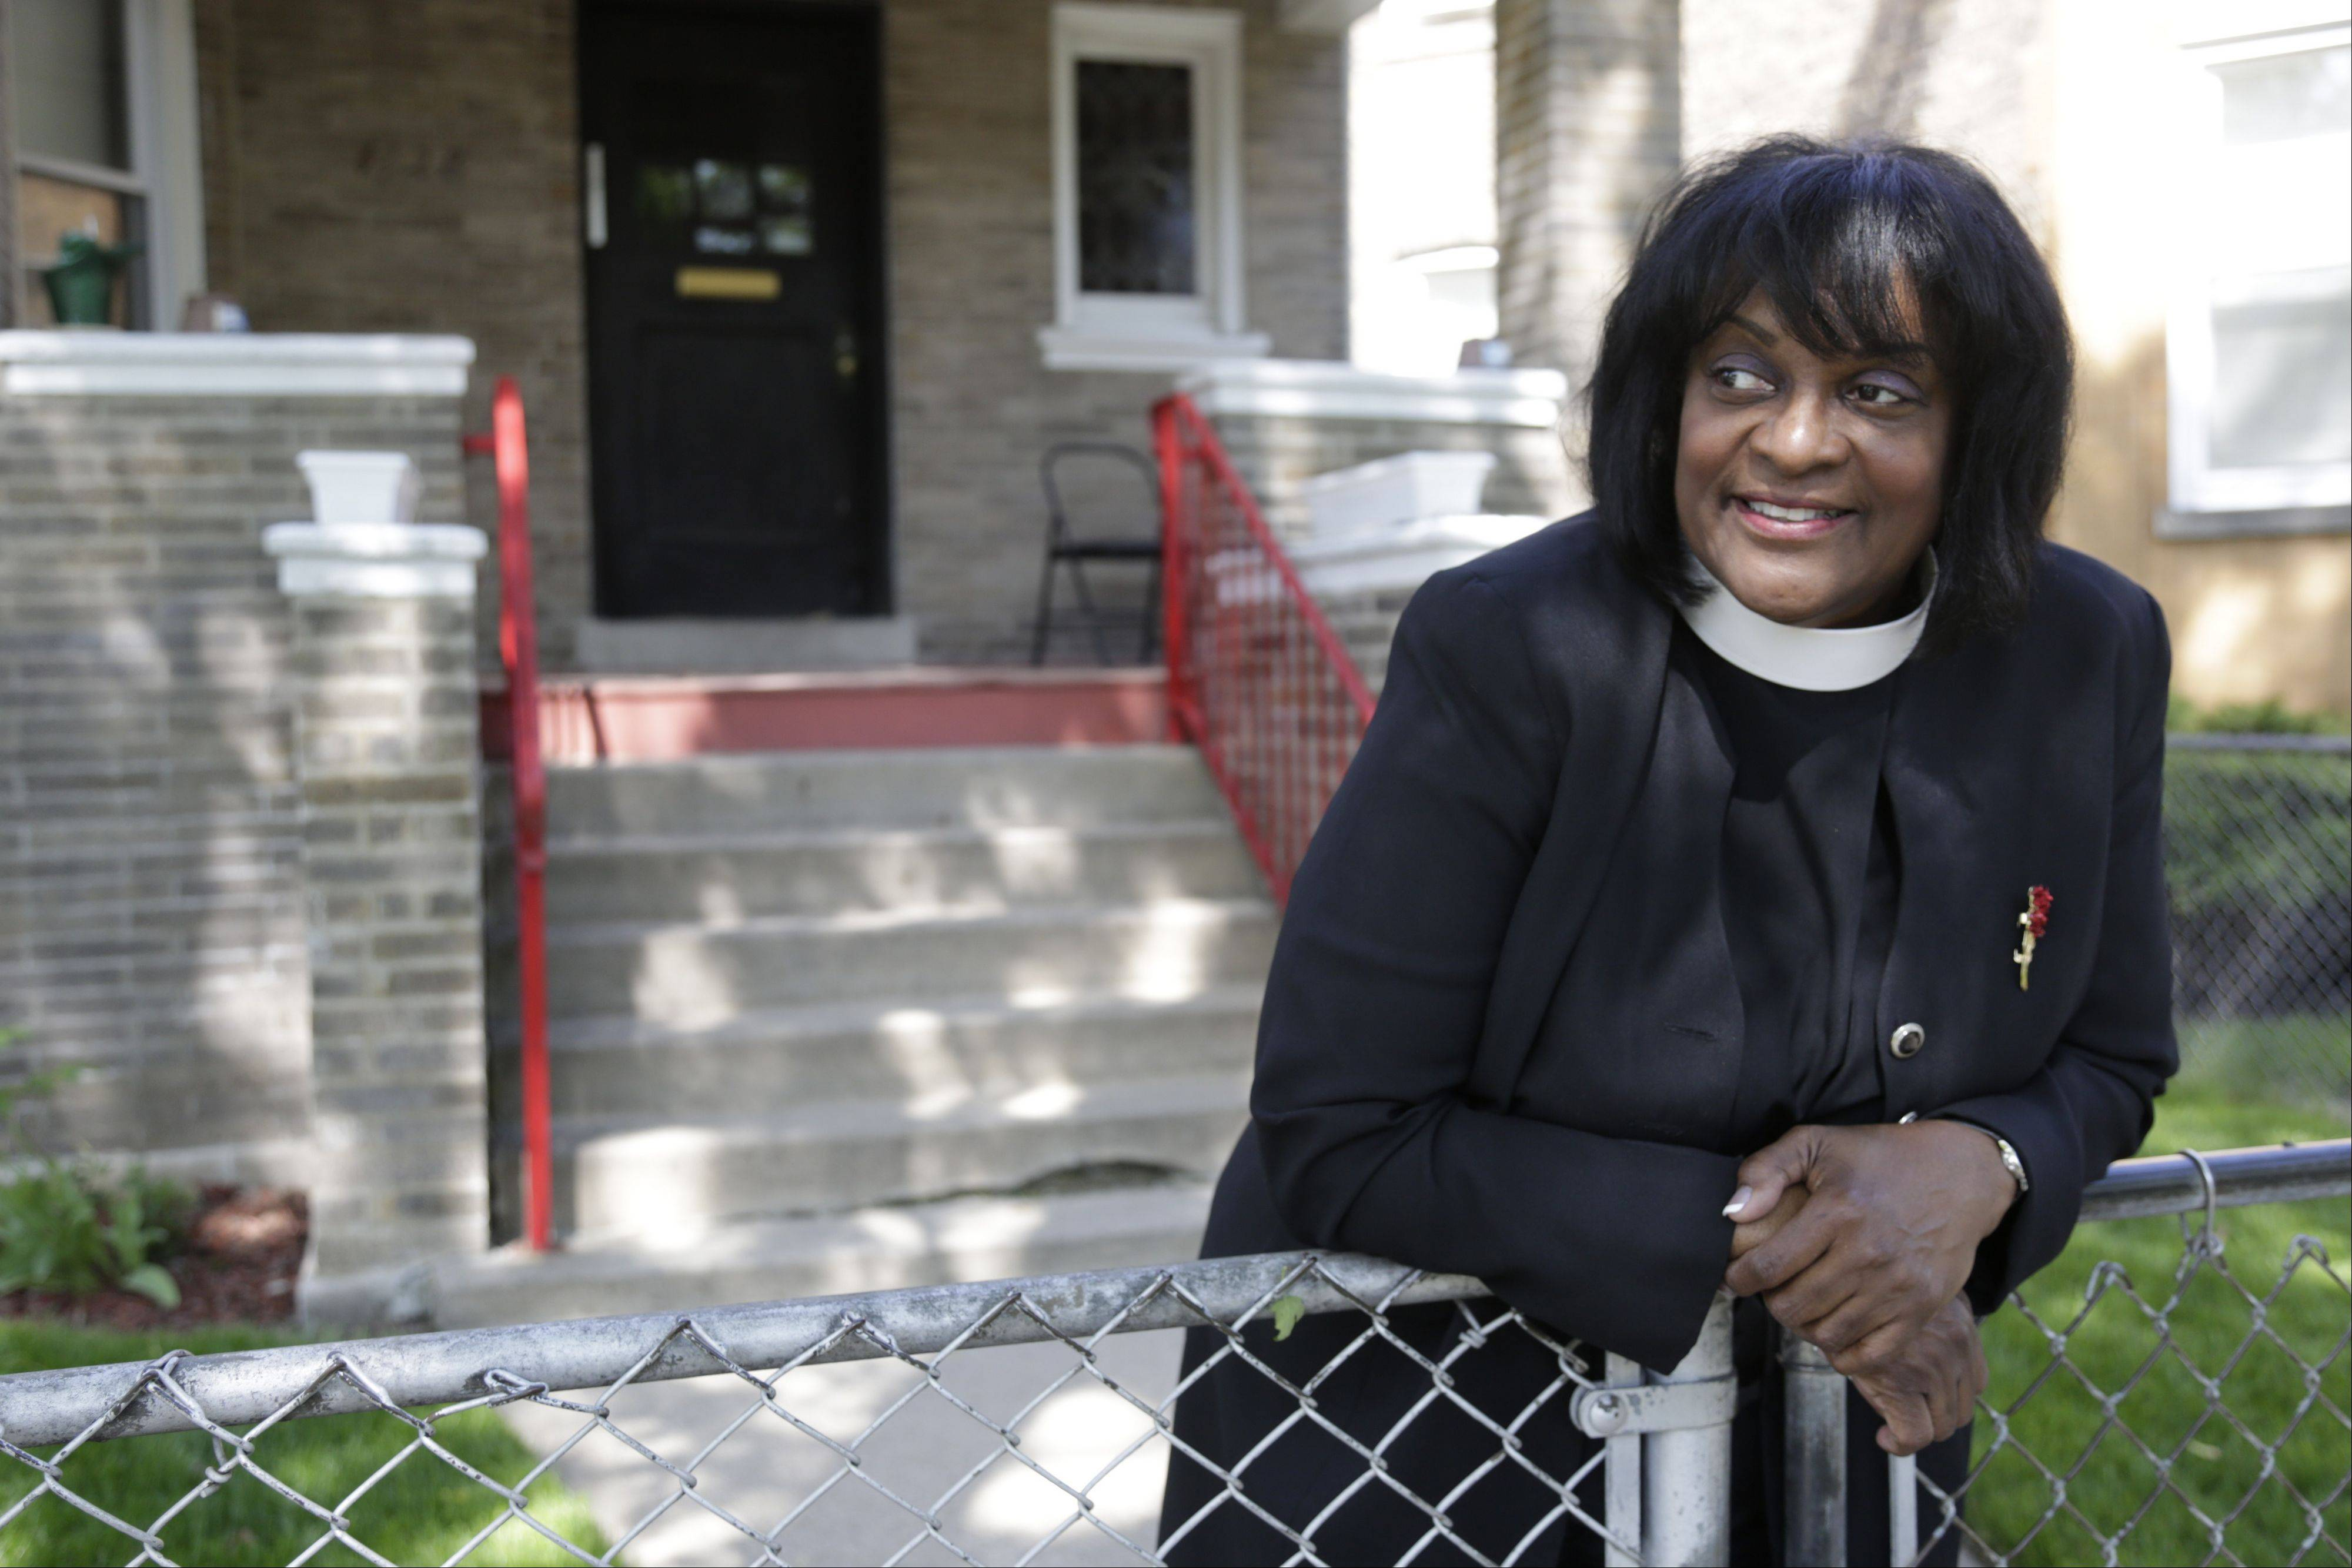 The Rev. Debra Davis signed up for a Cook County program, called CountyCare, when she left her job to deal with health problems and lost her health insurance. If Illinois lawmakers fail to pass the expansion of Medicaid under the nation�s health care law, Cook County�s program will be in jeopardy.